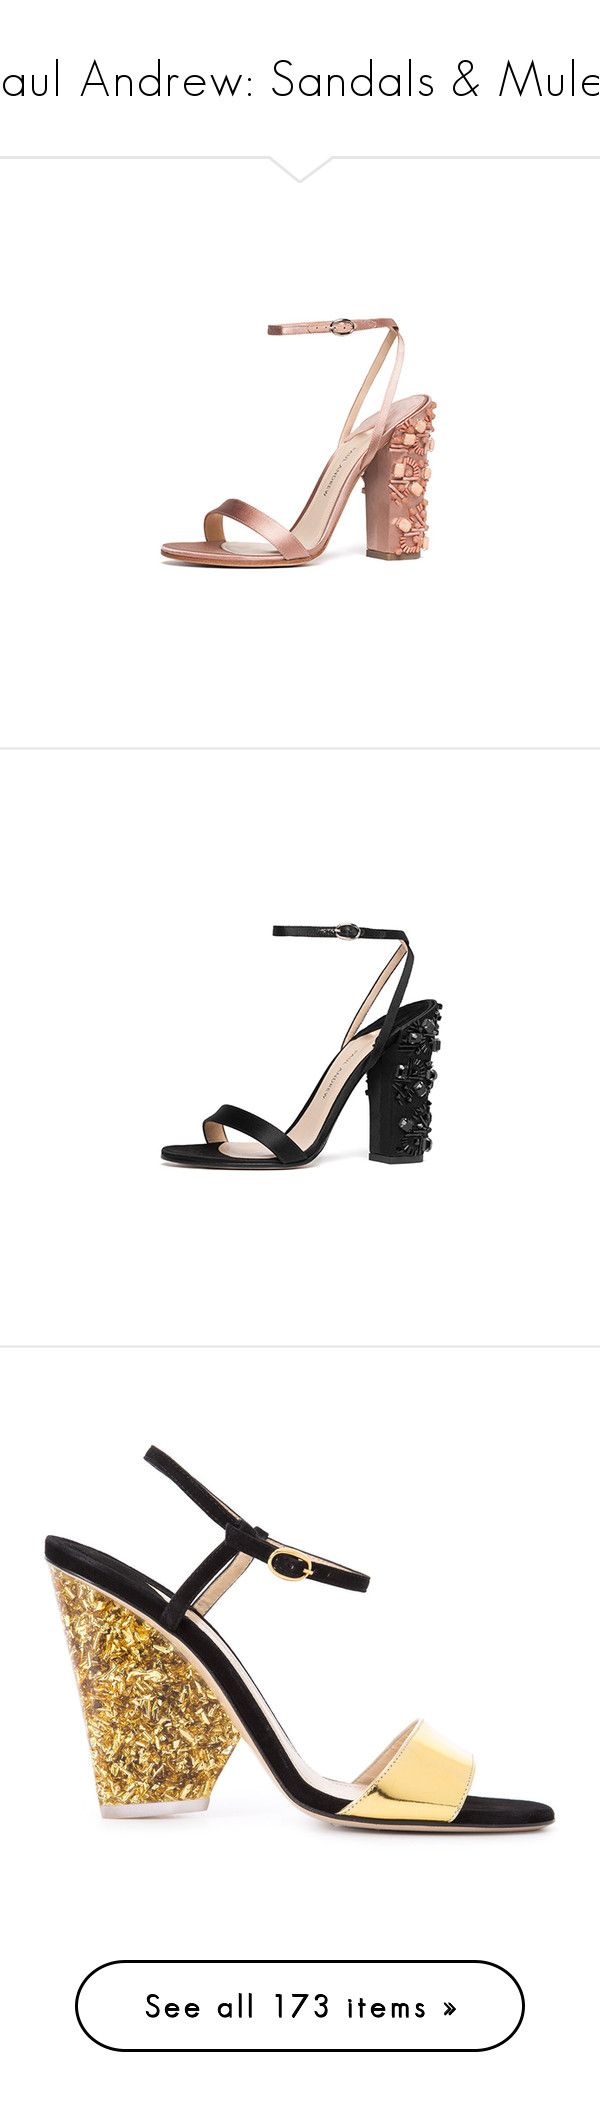 """""""Paul Andrew: Sandals & Mules"""" by livnd ❤ liked on Polyvore featuring sandals, collection, mules, paulandrew, shoes, black, paul andrew shoes, black shoes, paul andrew and kohl shoes"""